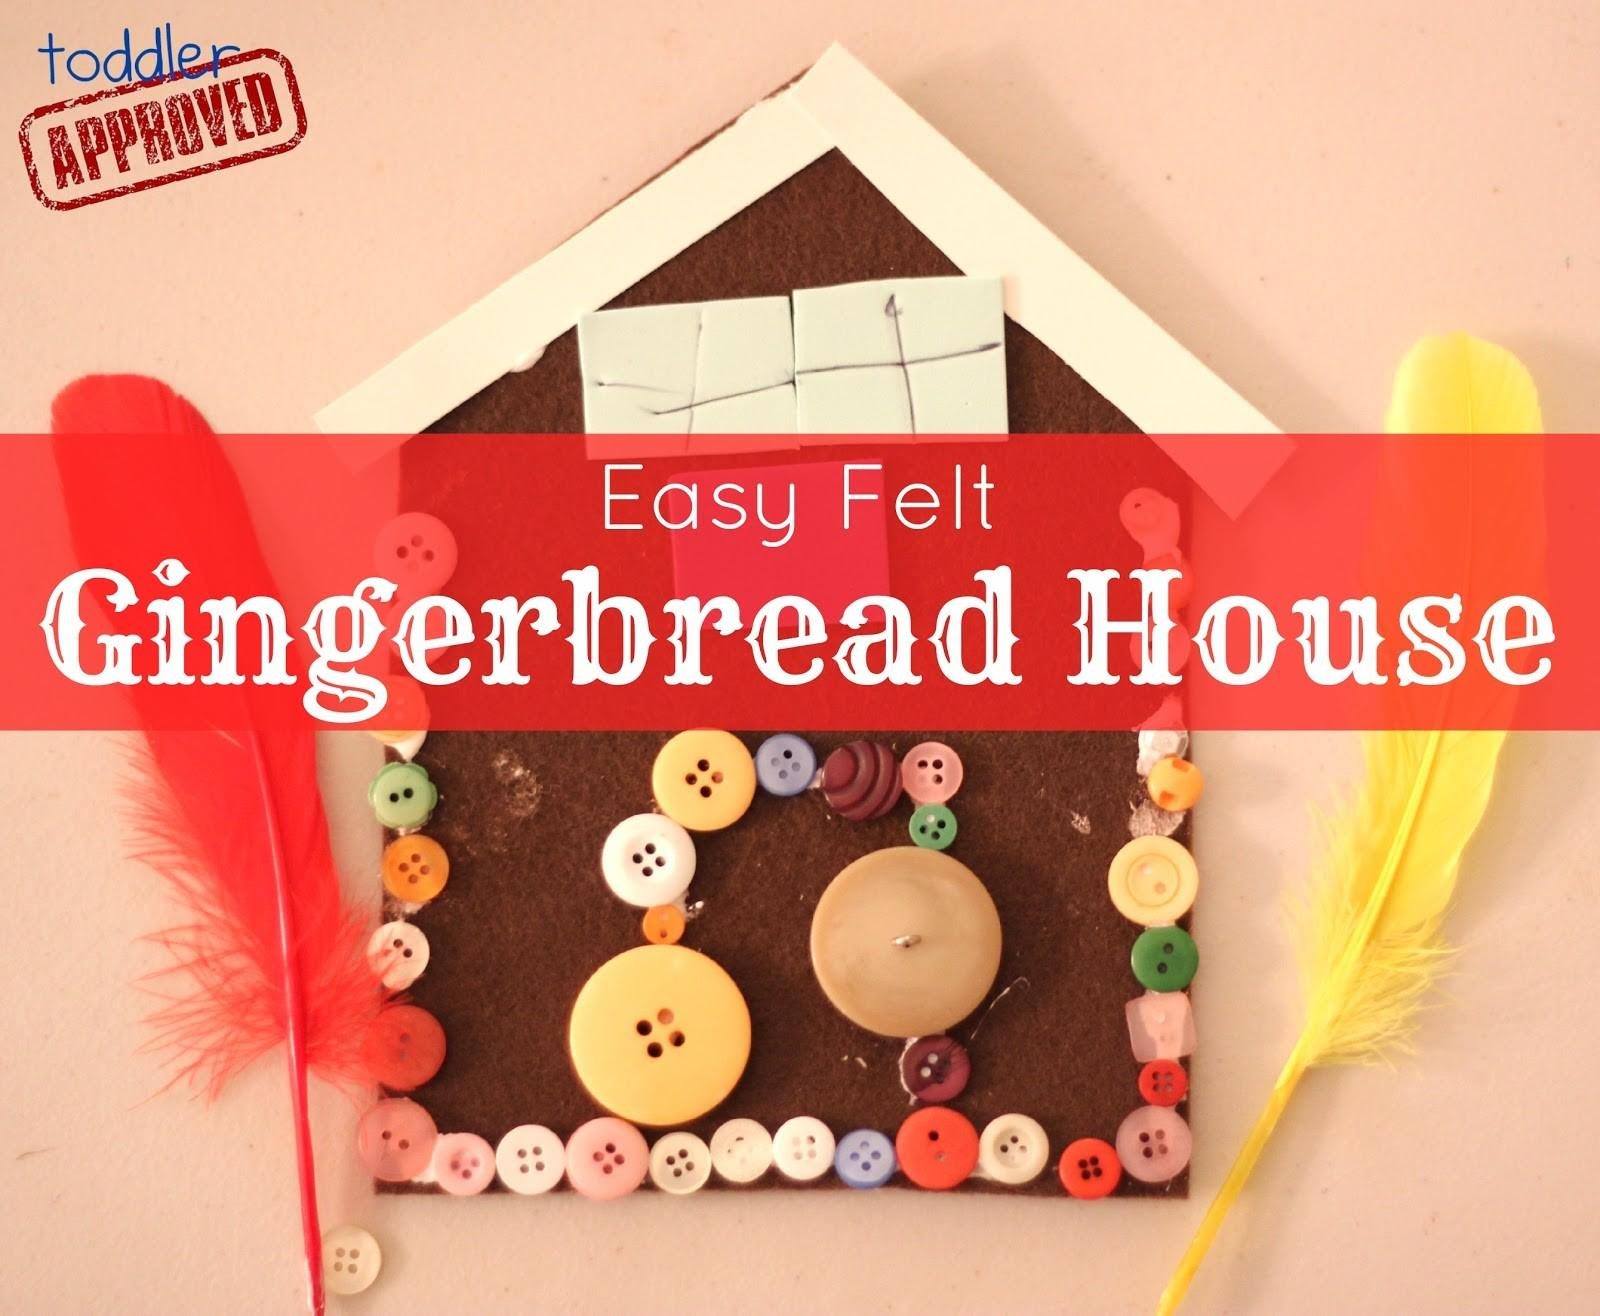 Toddler Approved Christmas Crafts Easy Felt Gingerbread